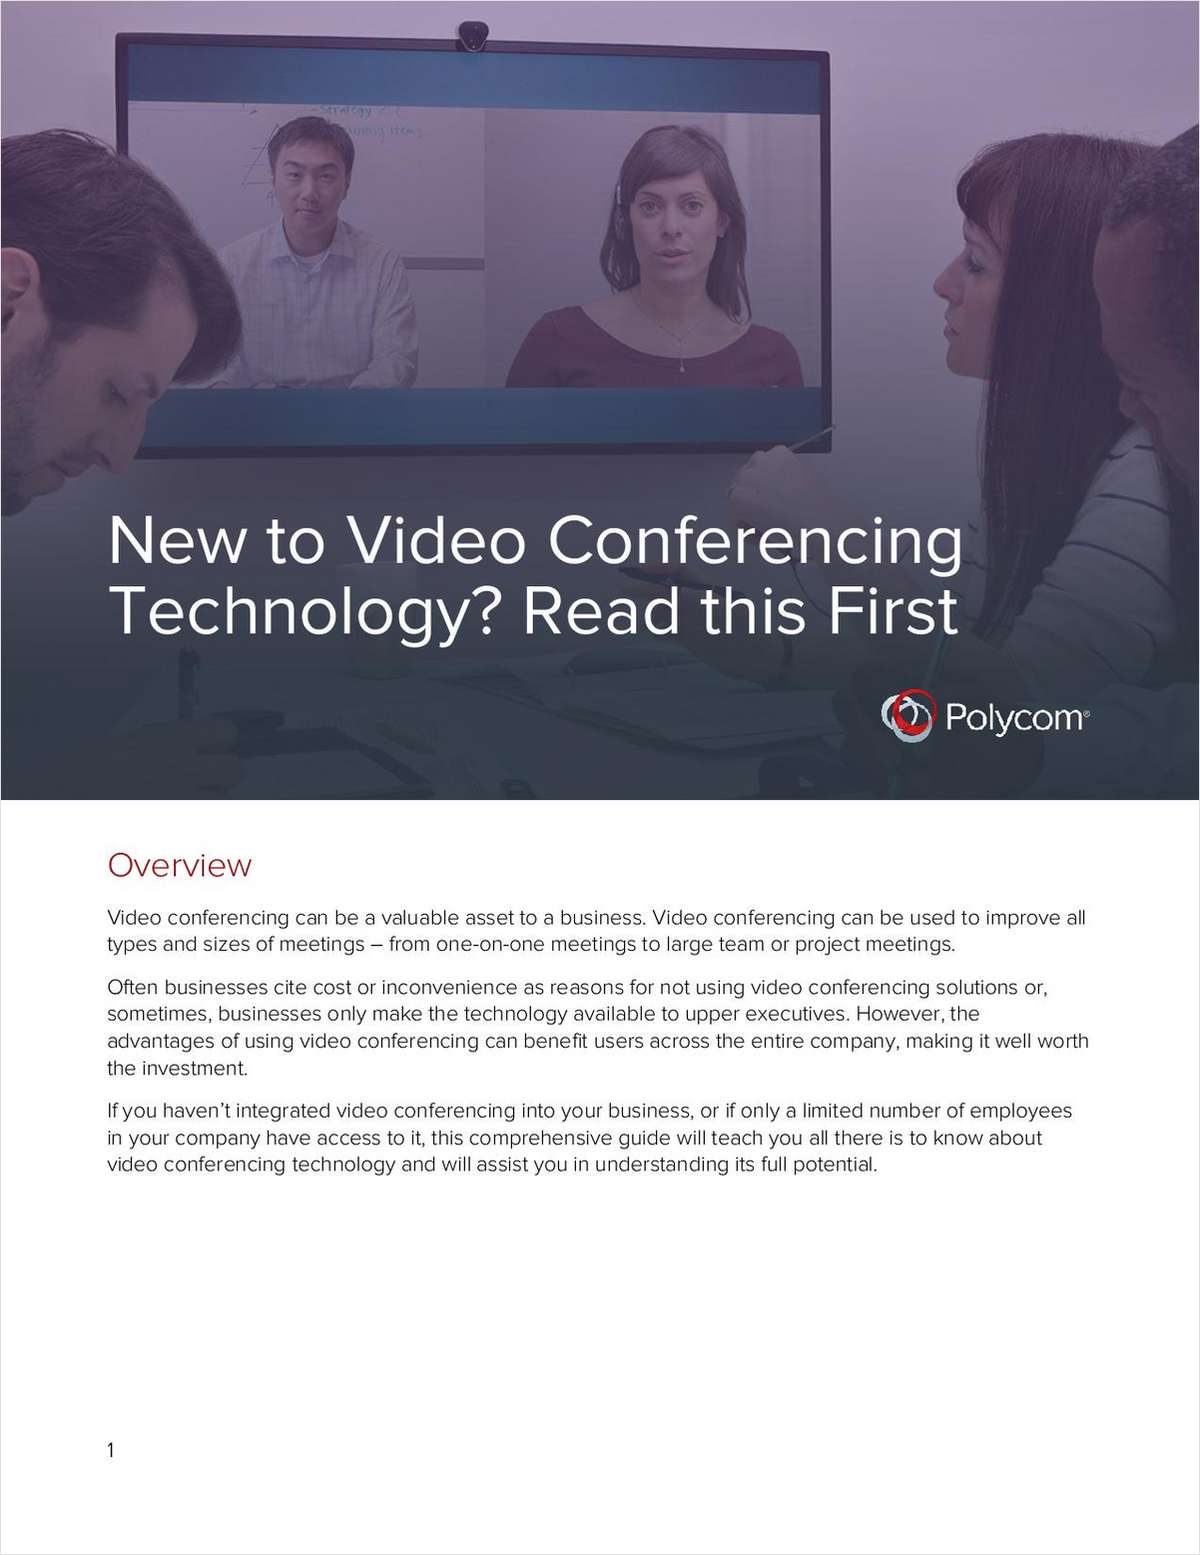 New to Video Conferencing Technology? Read this First